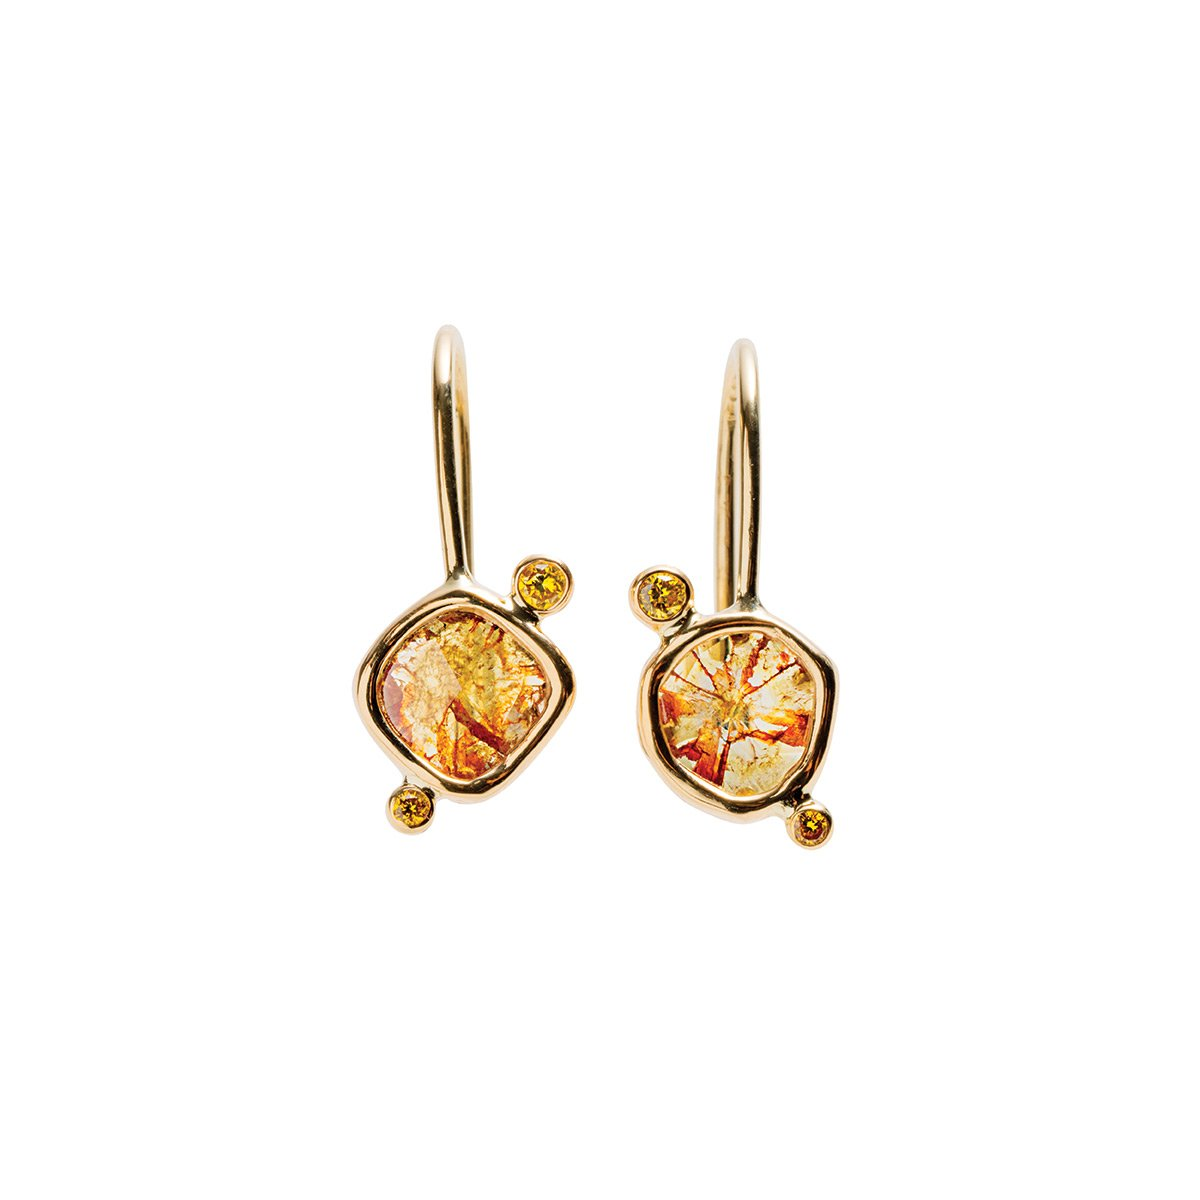 Meredith Young Jewelry Birds of Paradise Diamond Earrings